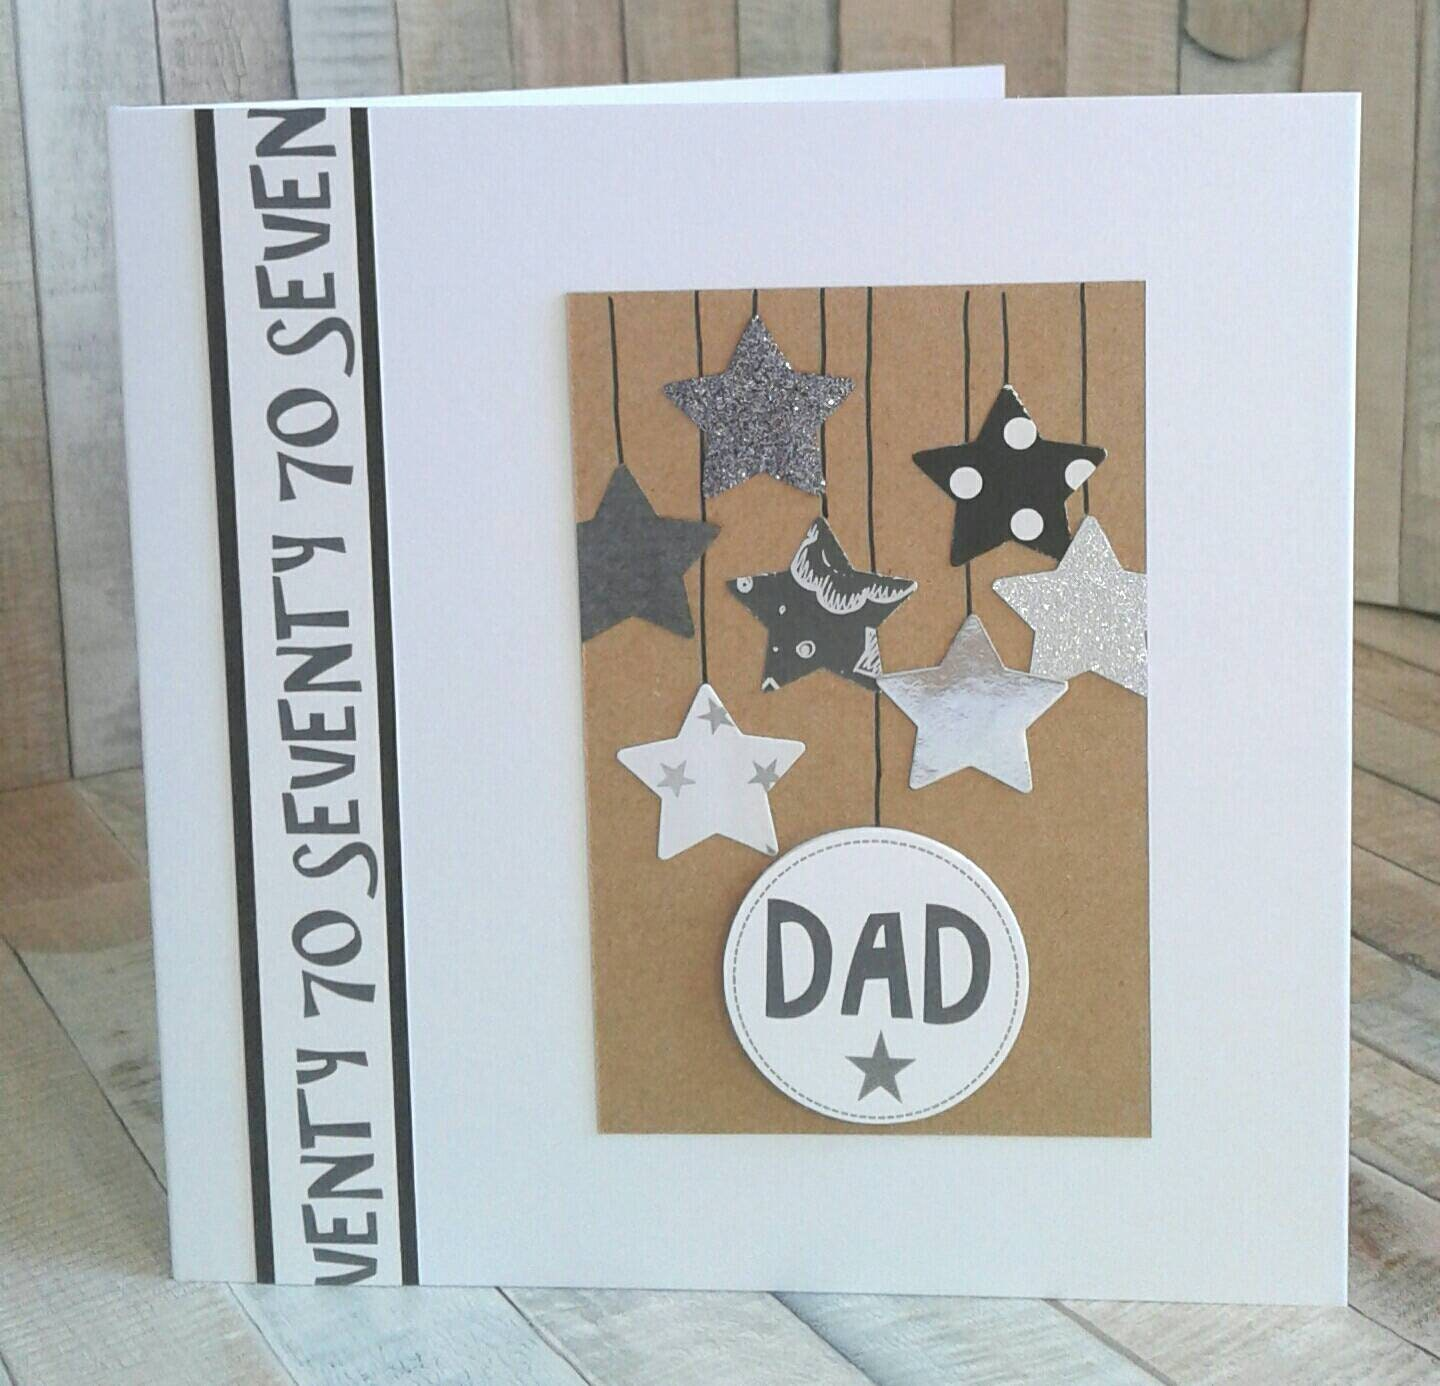 DAD 70th BIRTHDAY CARD Card For Birthday Cards Him Seventy Age Milestone Customise Personalise